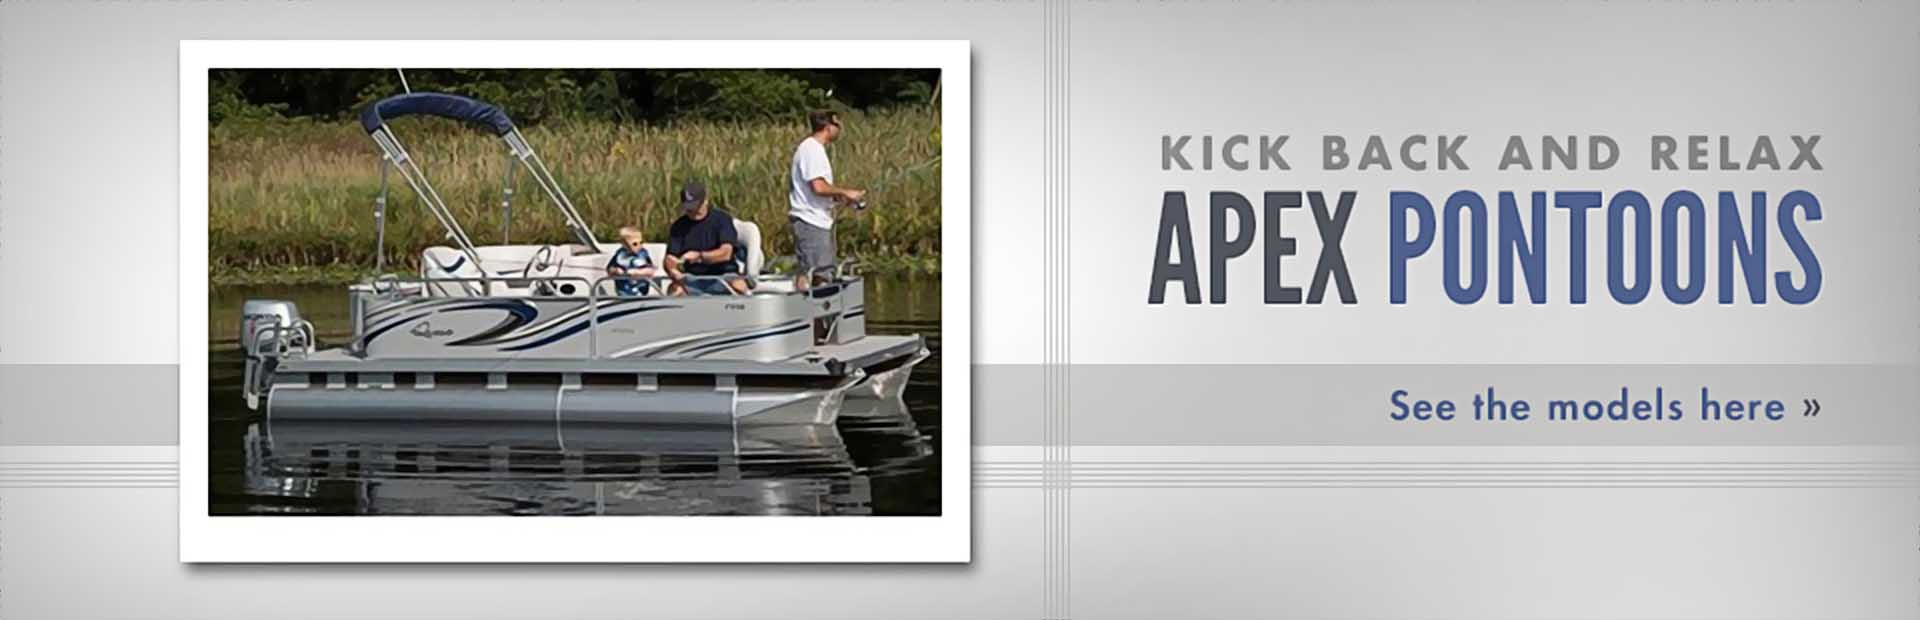 Apex Pontoons: Click here to see the models!